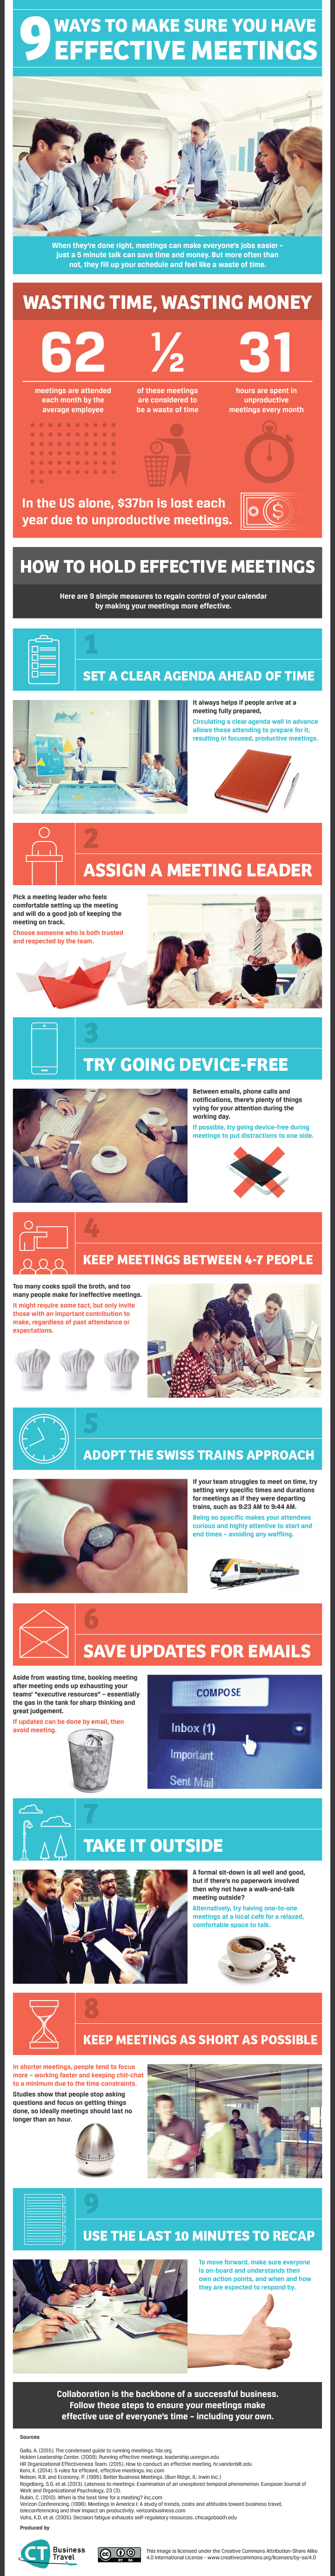 9 Ways to Make Sure You Run Effective Meetings (Infographic)